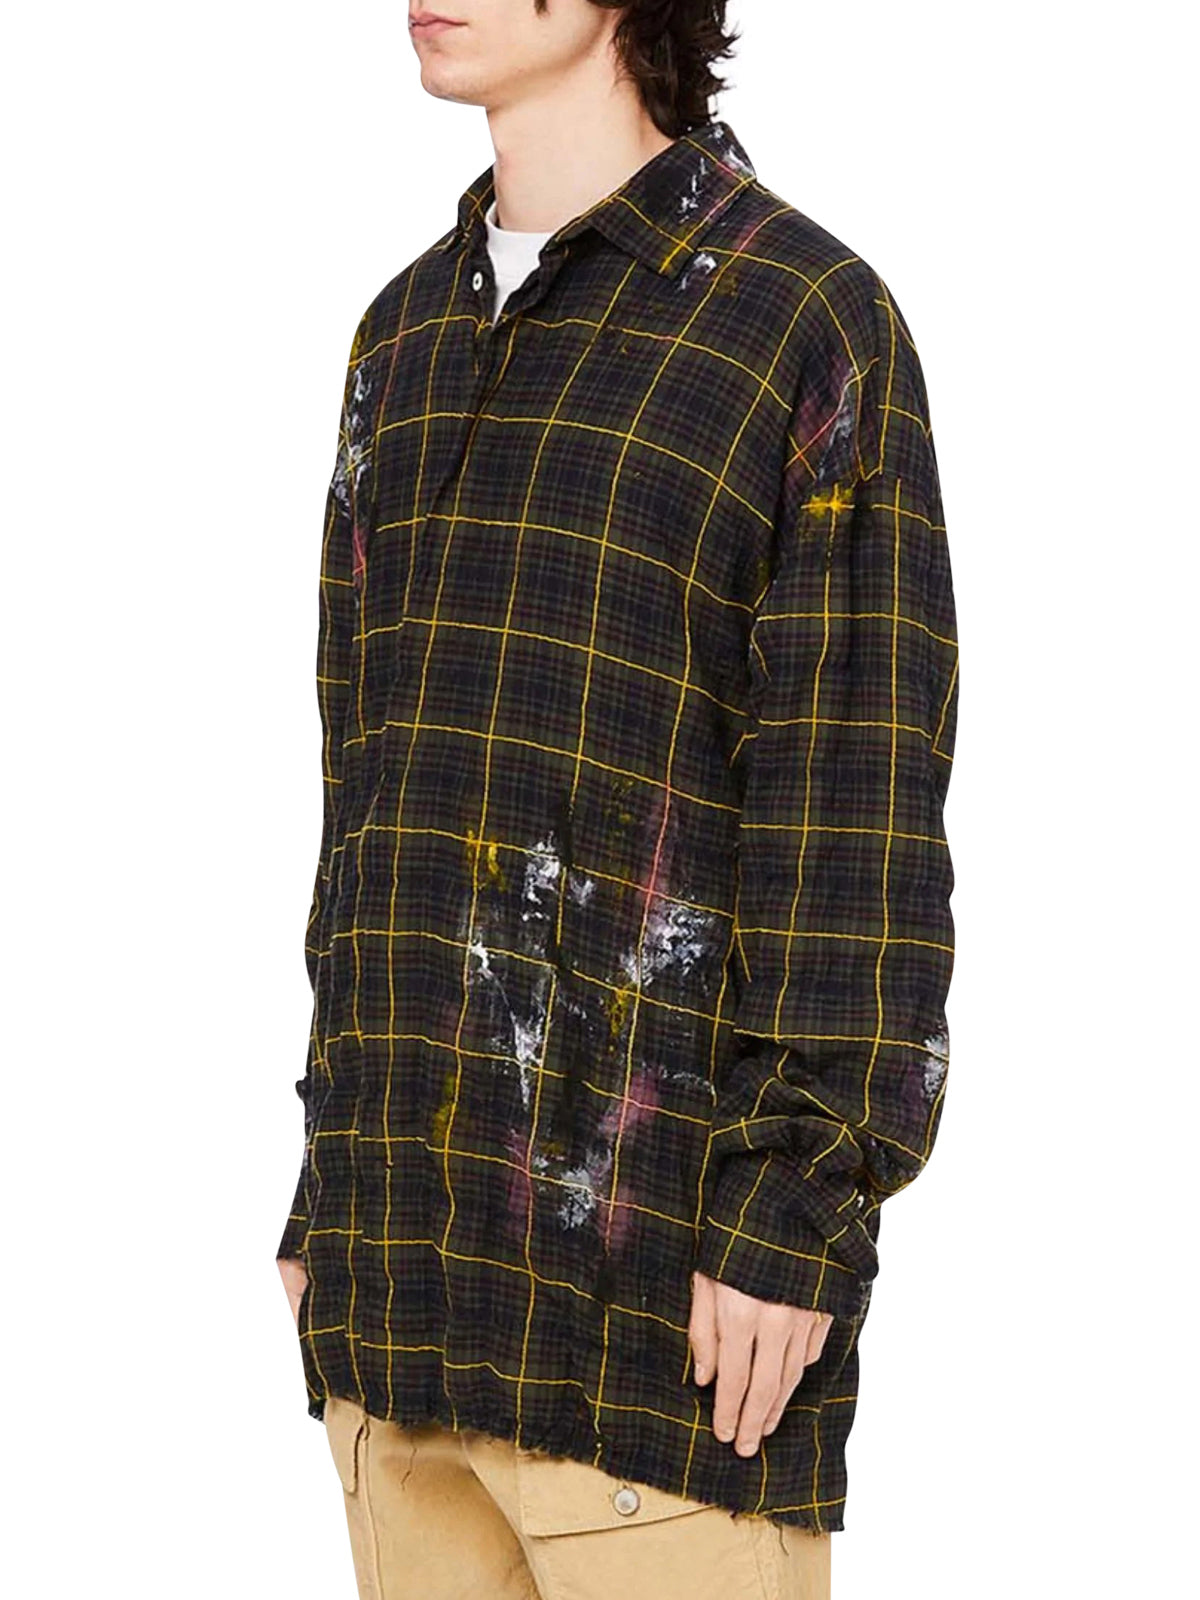 ROUND LOGO CHECK SHIRT